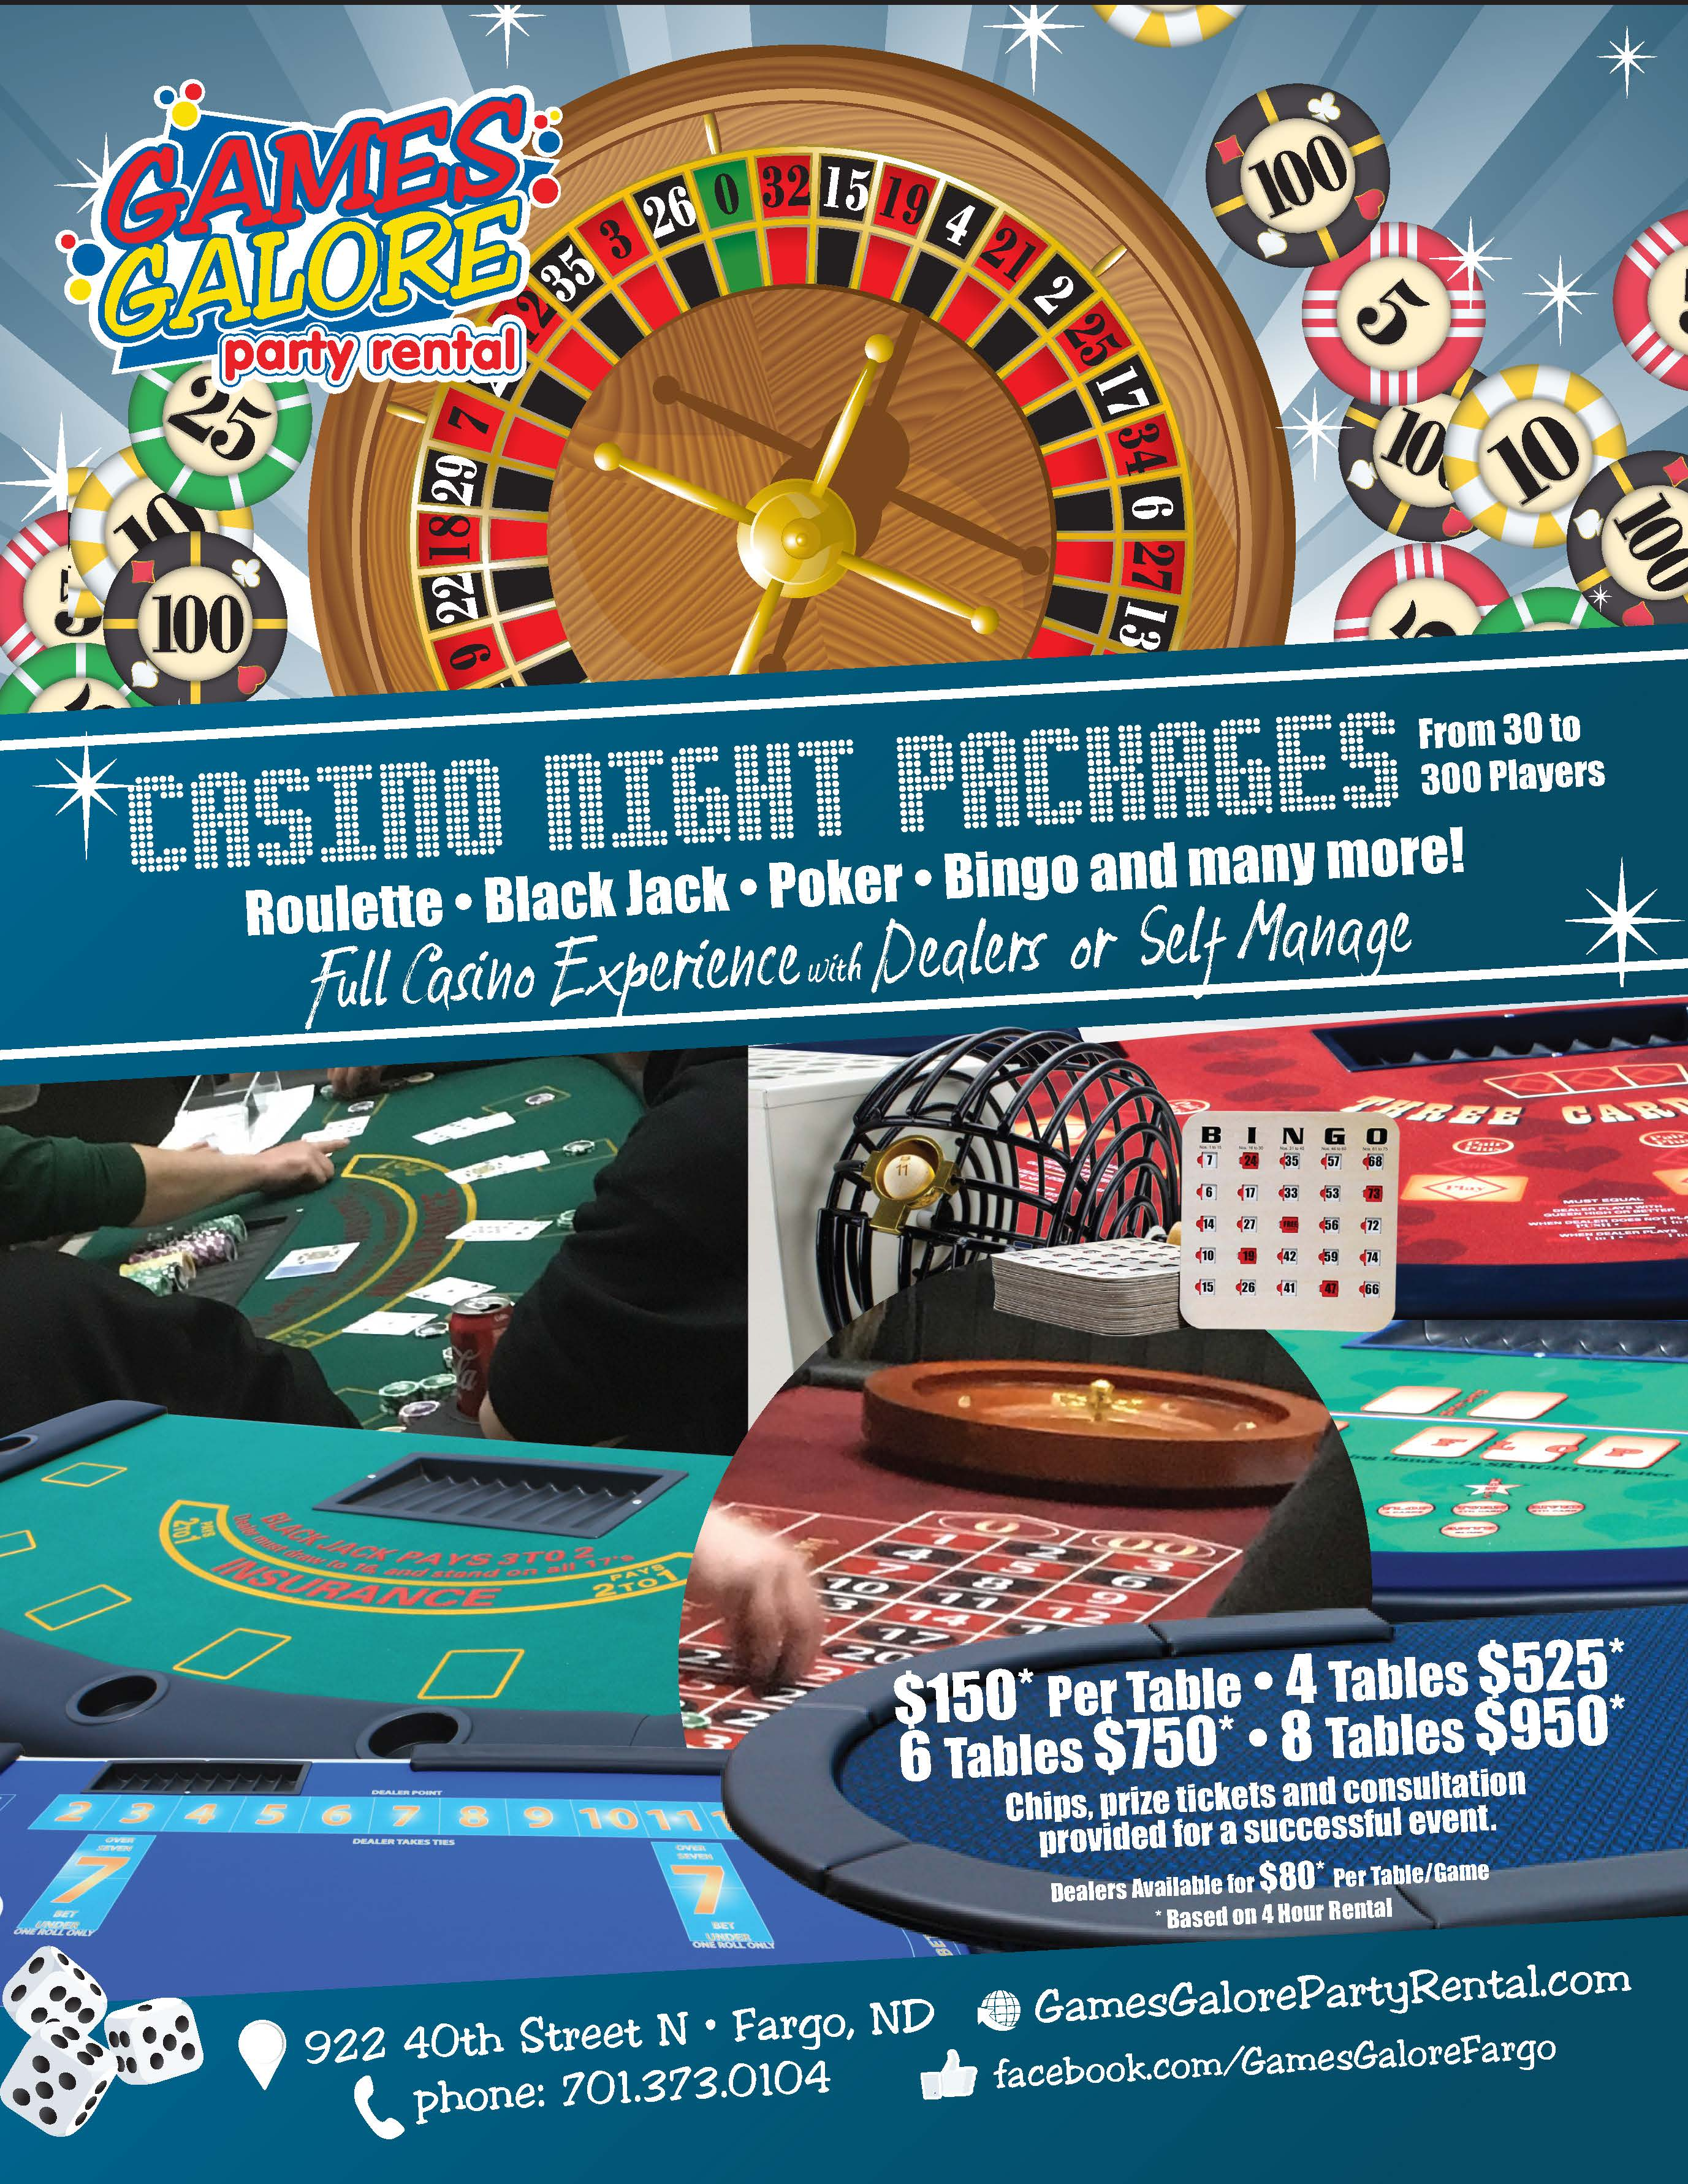 Casino Night Image Flier and Packages